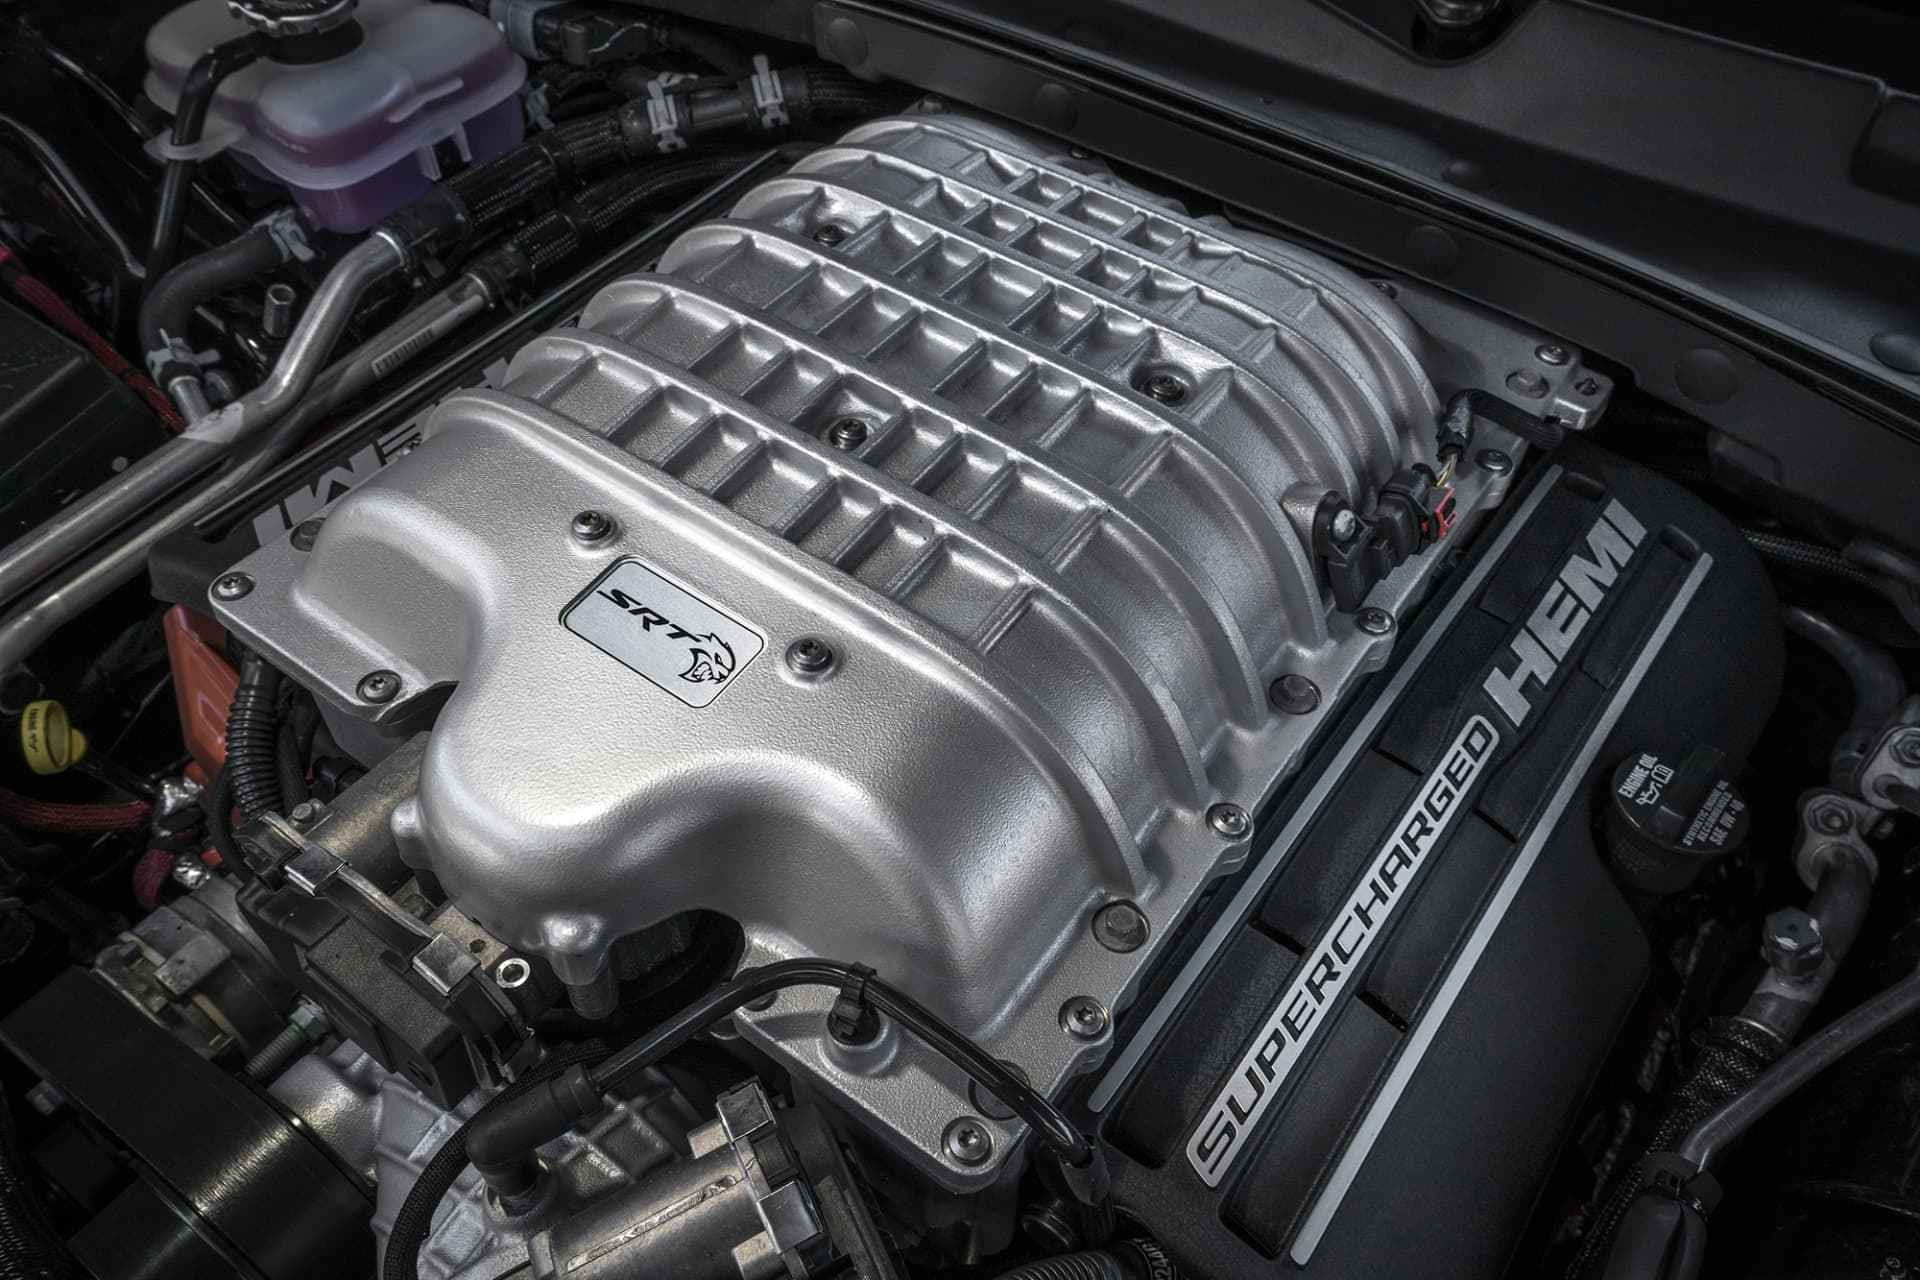 The engine, a compressor-fed V8 of 6.2 liters, is nothing less than a masterpiece. With 717 horses and 881 Nm, one could almost think that this is enough power to move a mountain. However, fuel consumption is in line with thedrinkingof an alcoholic.